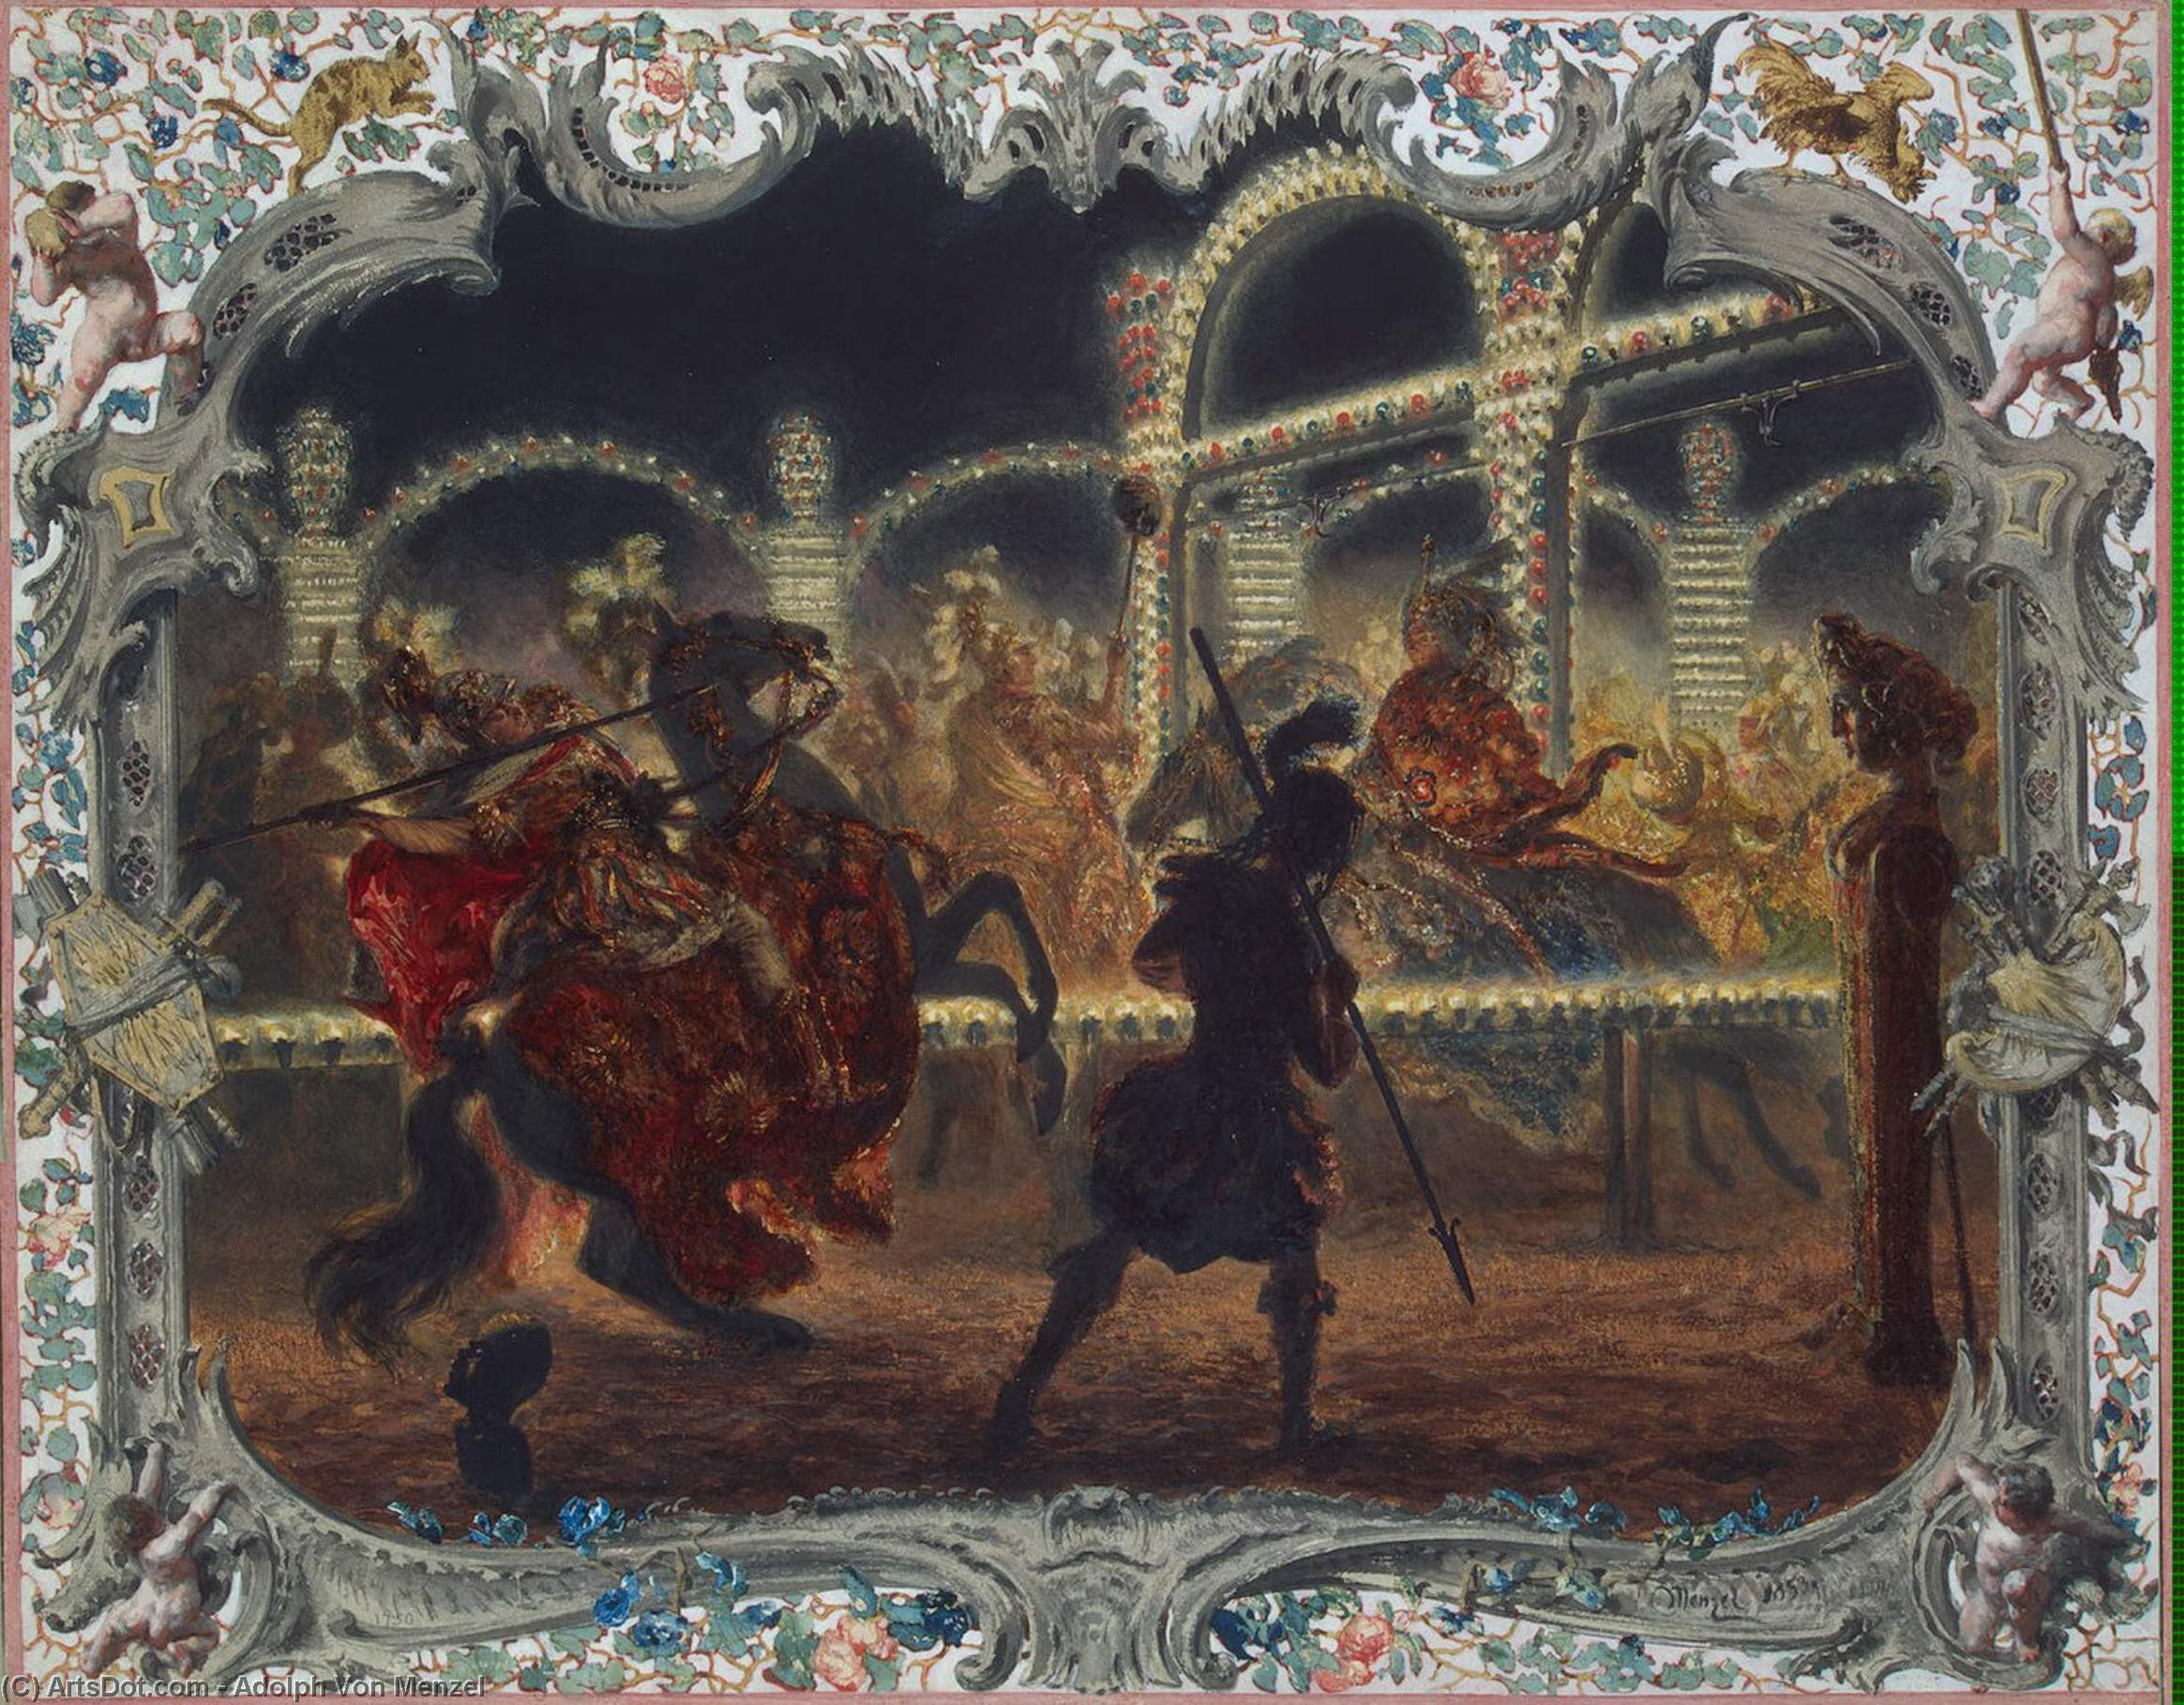 Night Carrousel under the Leadership of Frederick the Great in 1750, Drawing by Adolph Menzel (1815-1905, Poland)